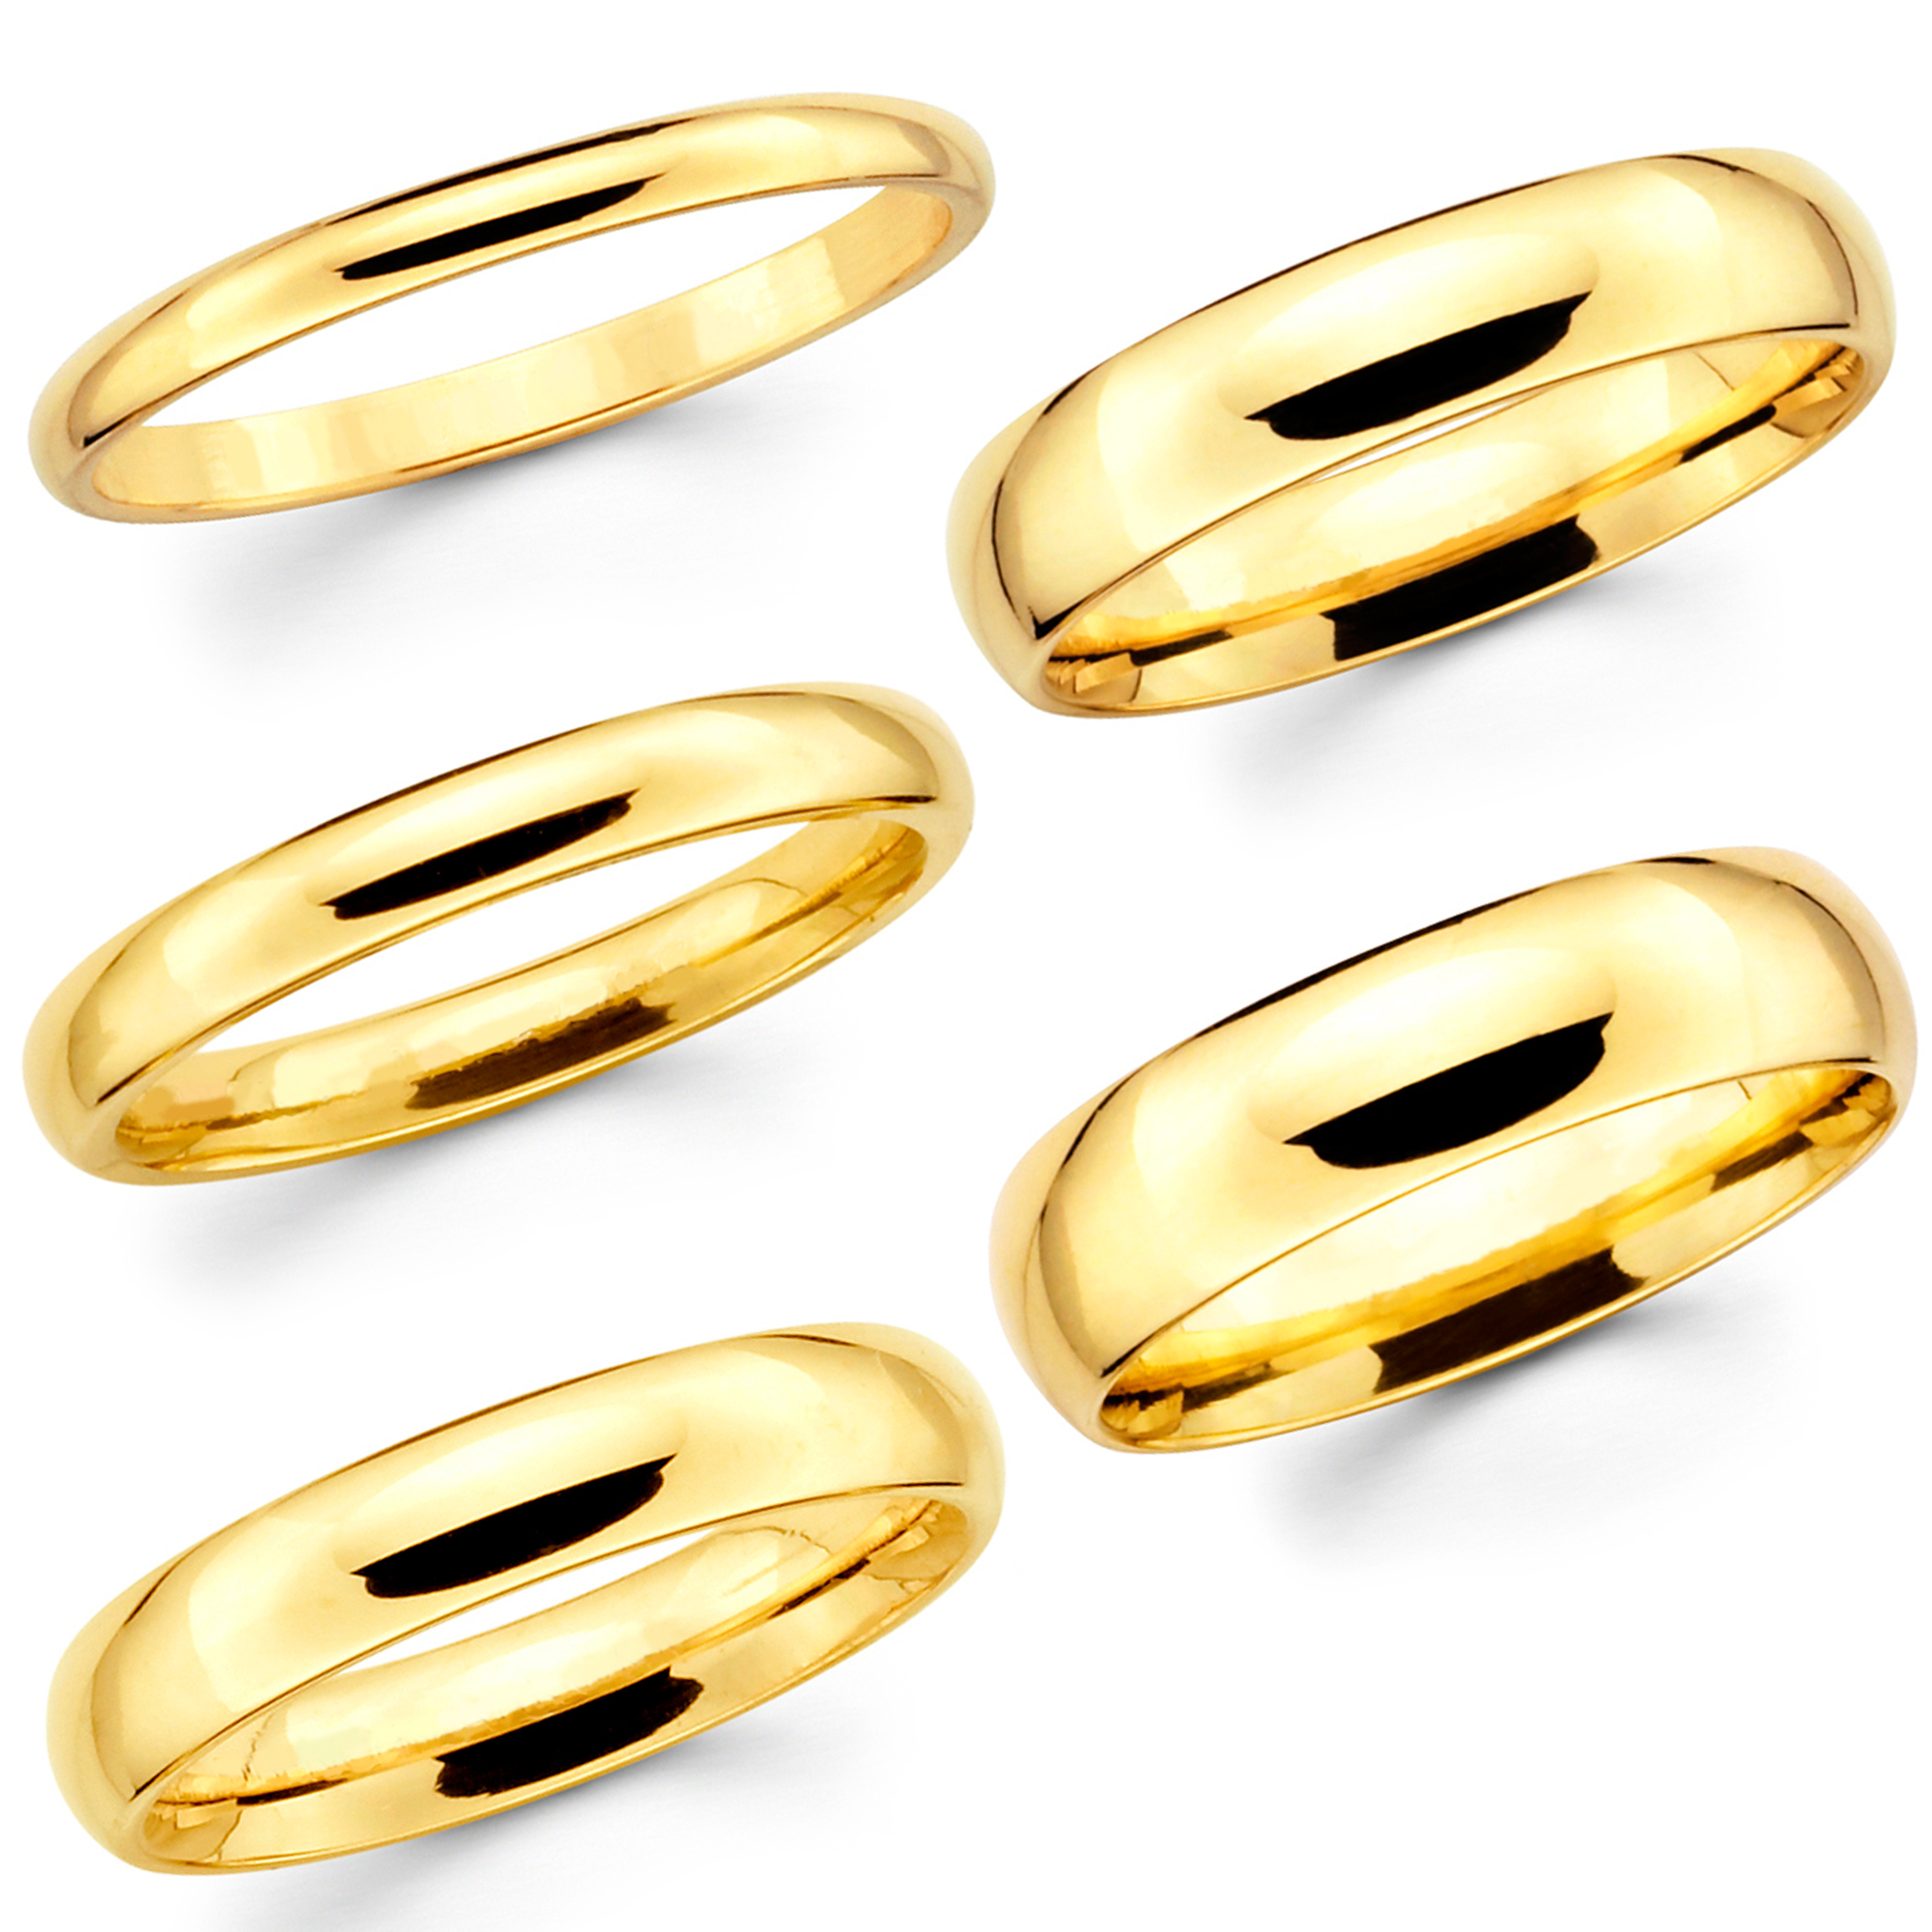 rings gold yellow paradise larger of view house orchid plain dp eleonore amazon com